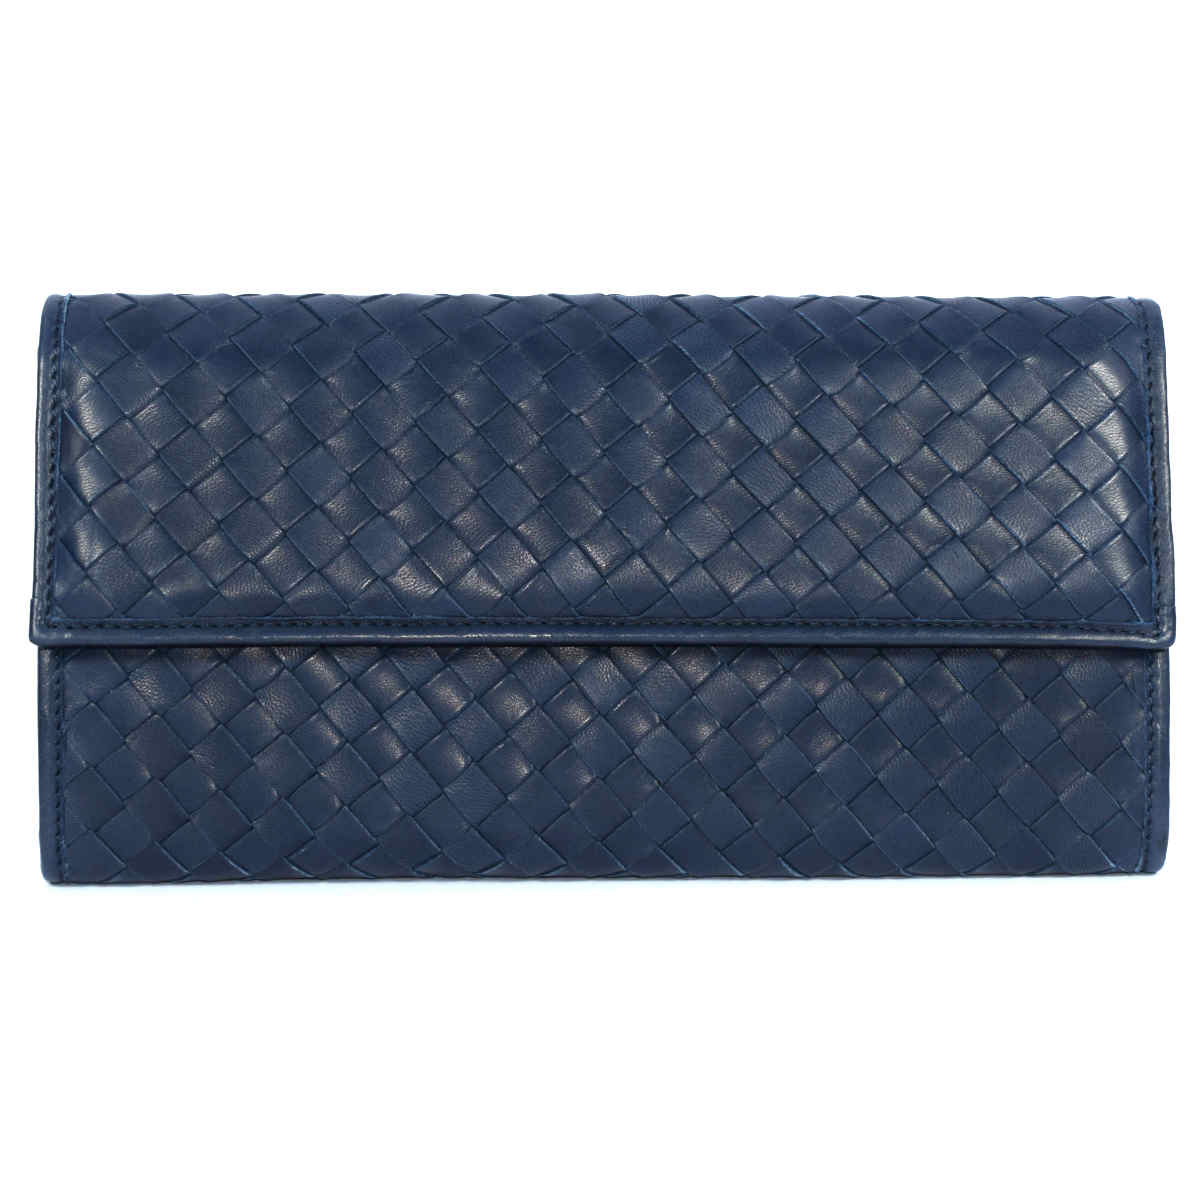 1820 RIGID CLUTCH by Bottega Fiorentina